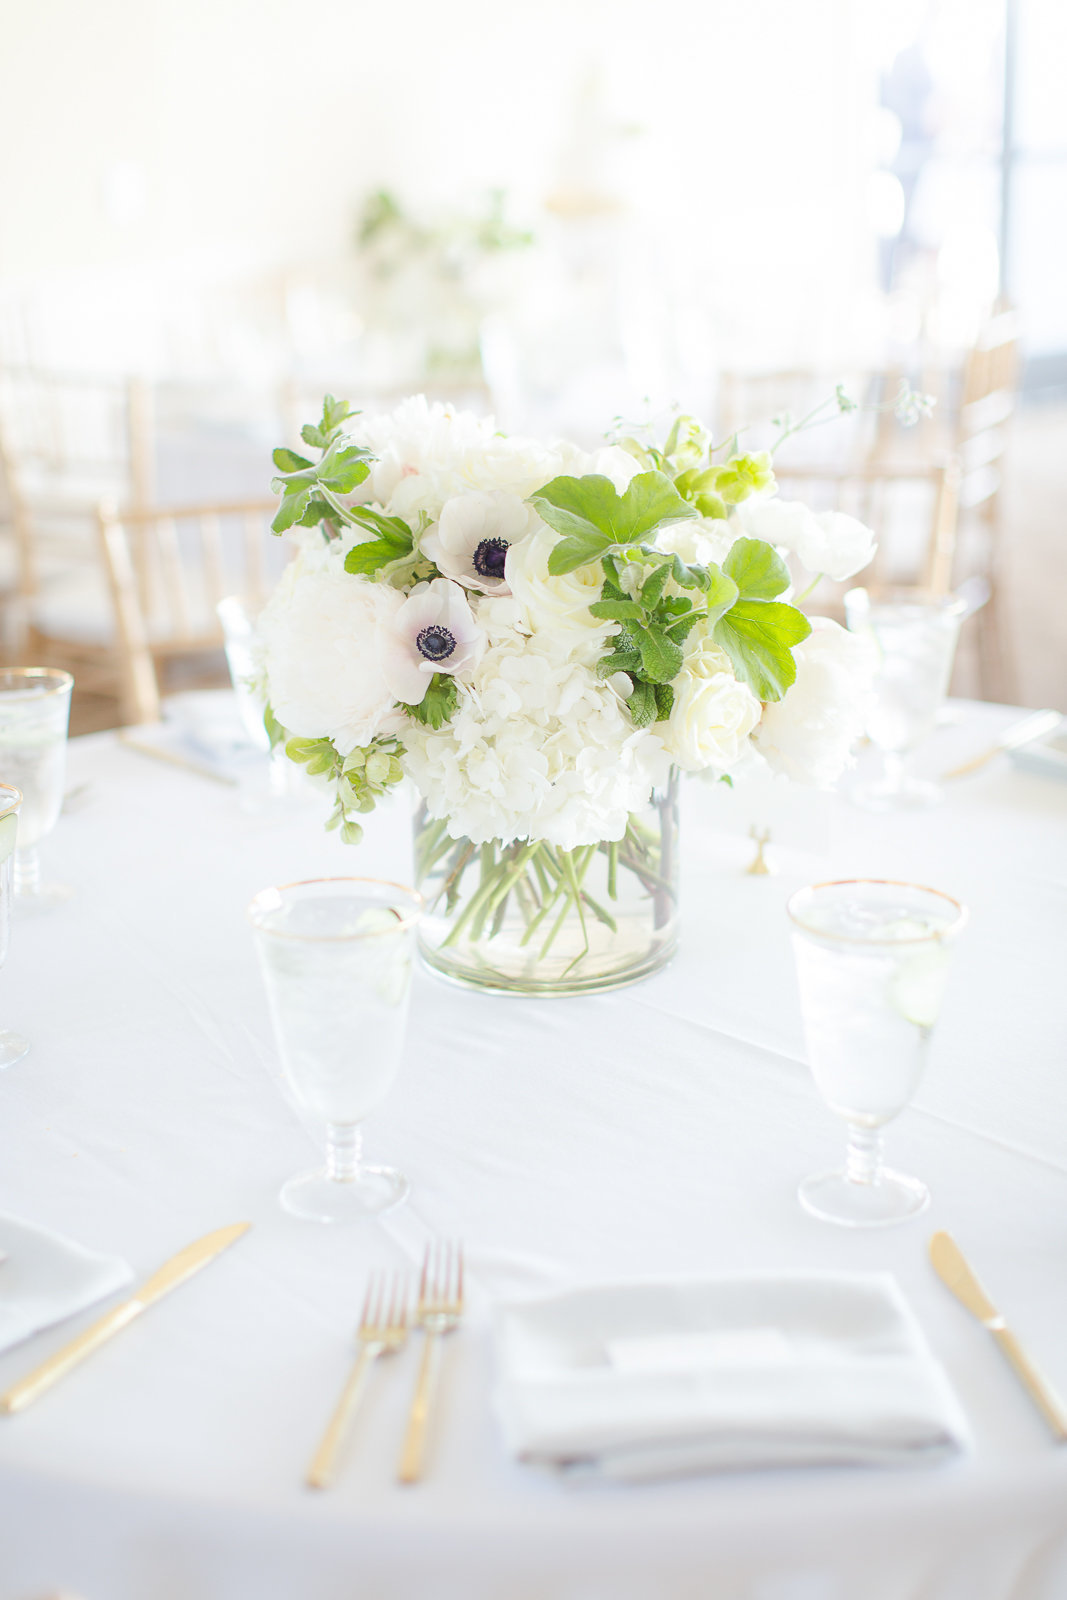 bride and groom reception flowers centerpiece tableware  nature outdoor wedding colorado wedding romantic